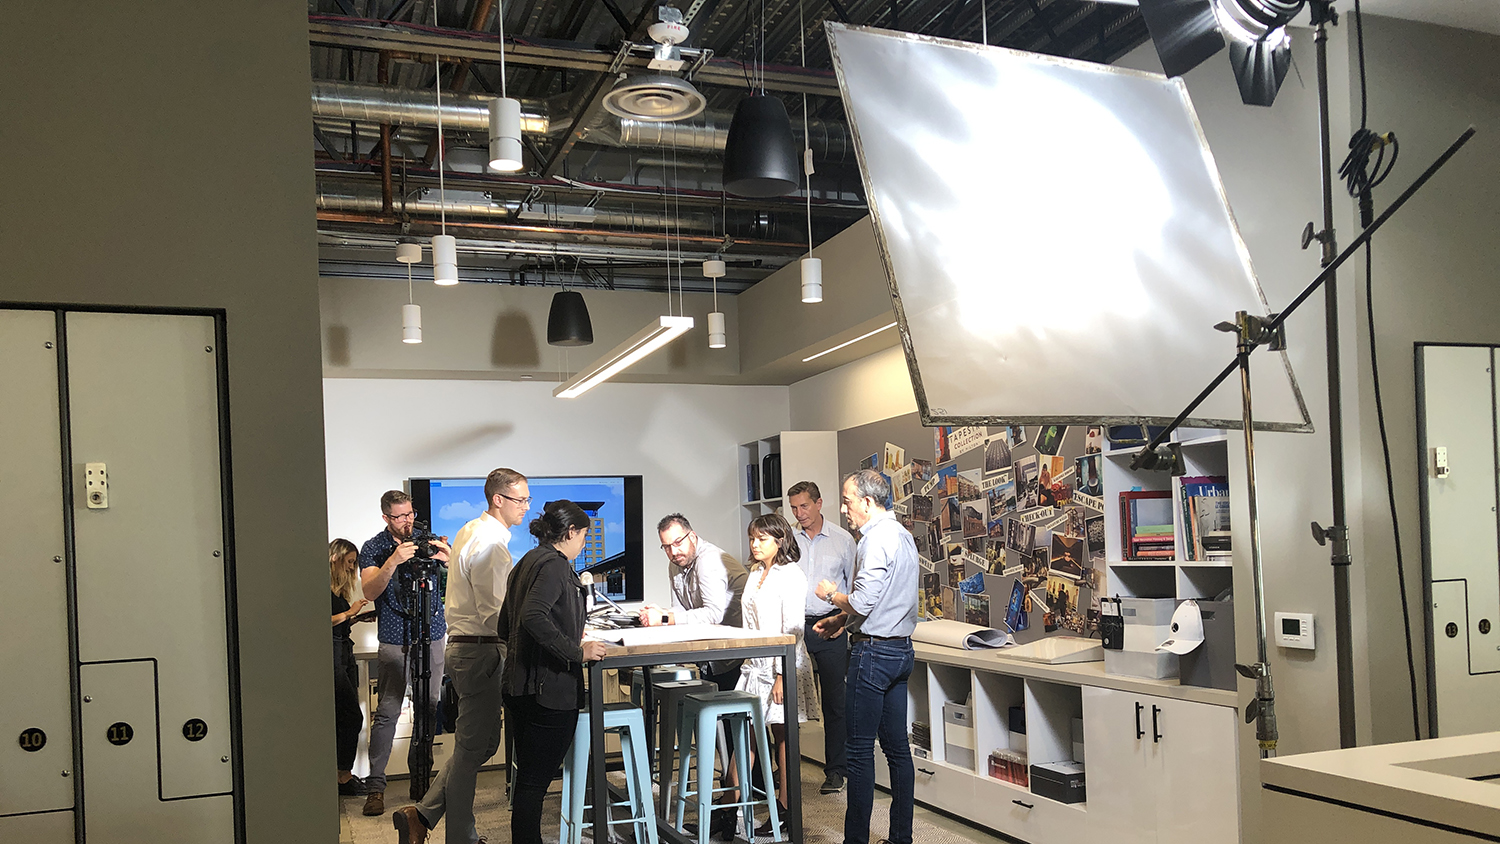 New company video filming for 2020